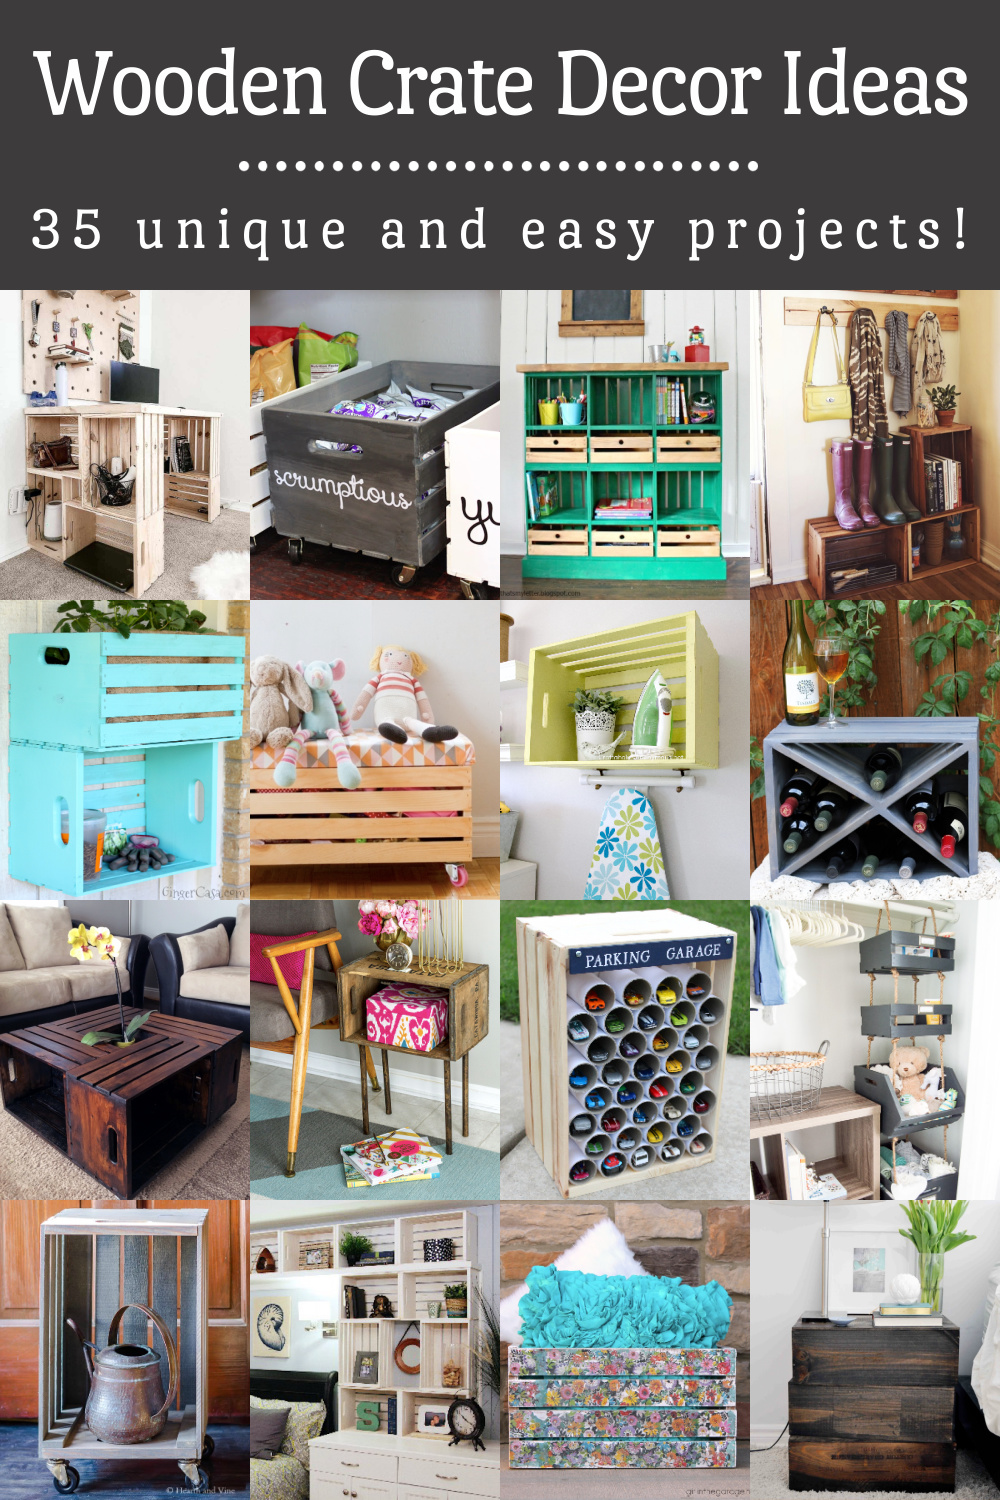 Wooden crate decorating ideas